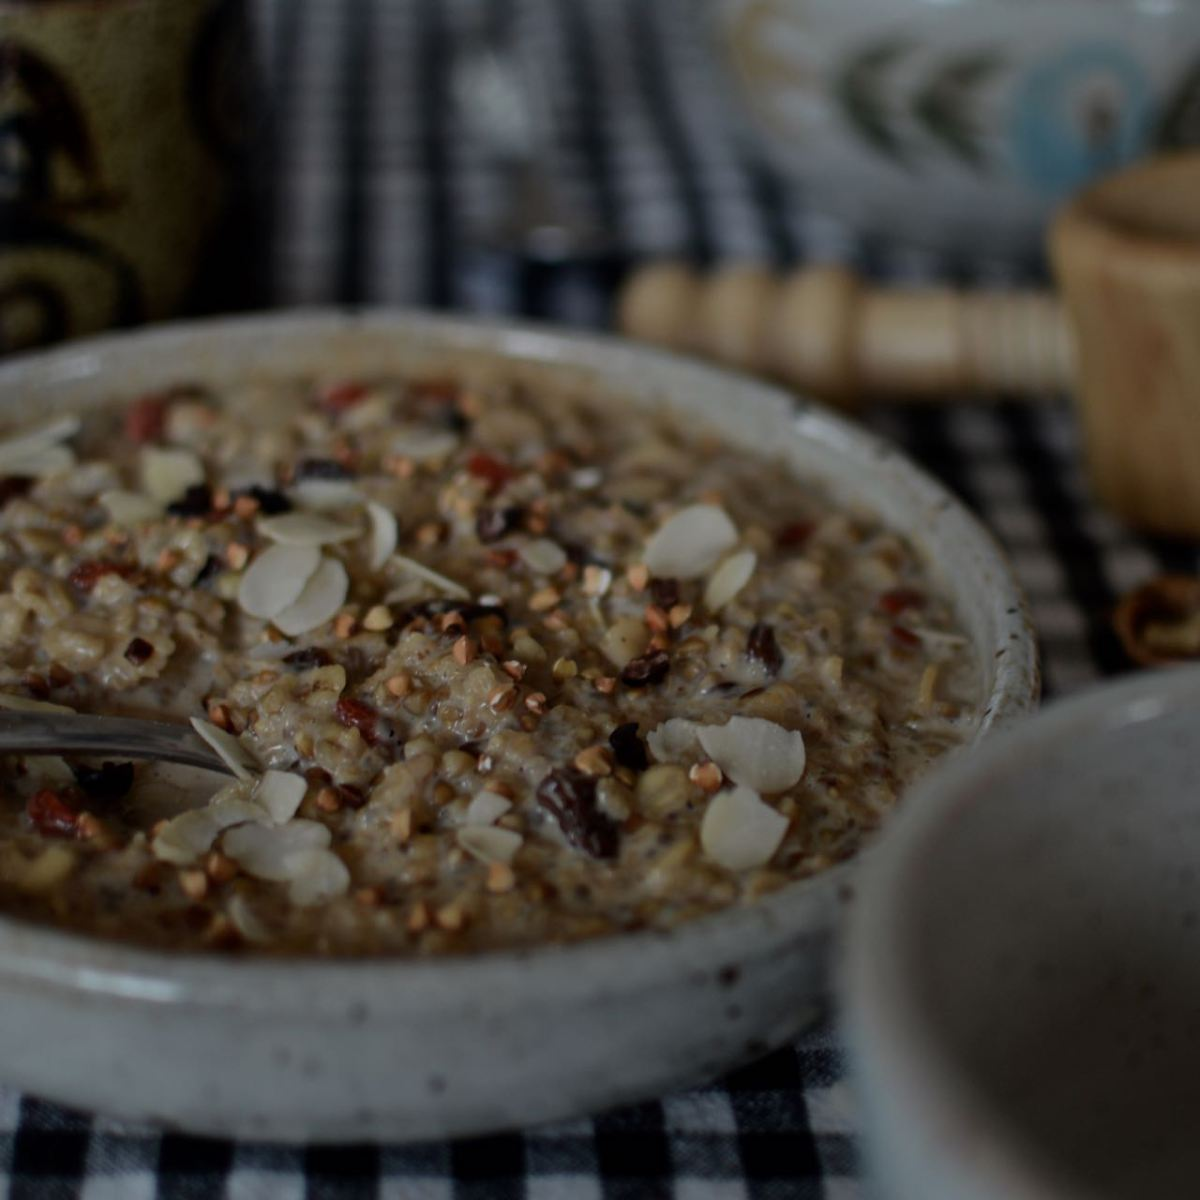 Winter breakfast kasha - buckwheat porridge